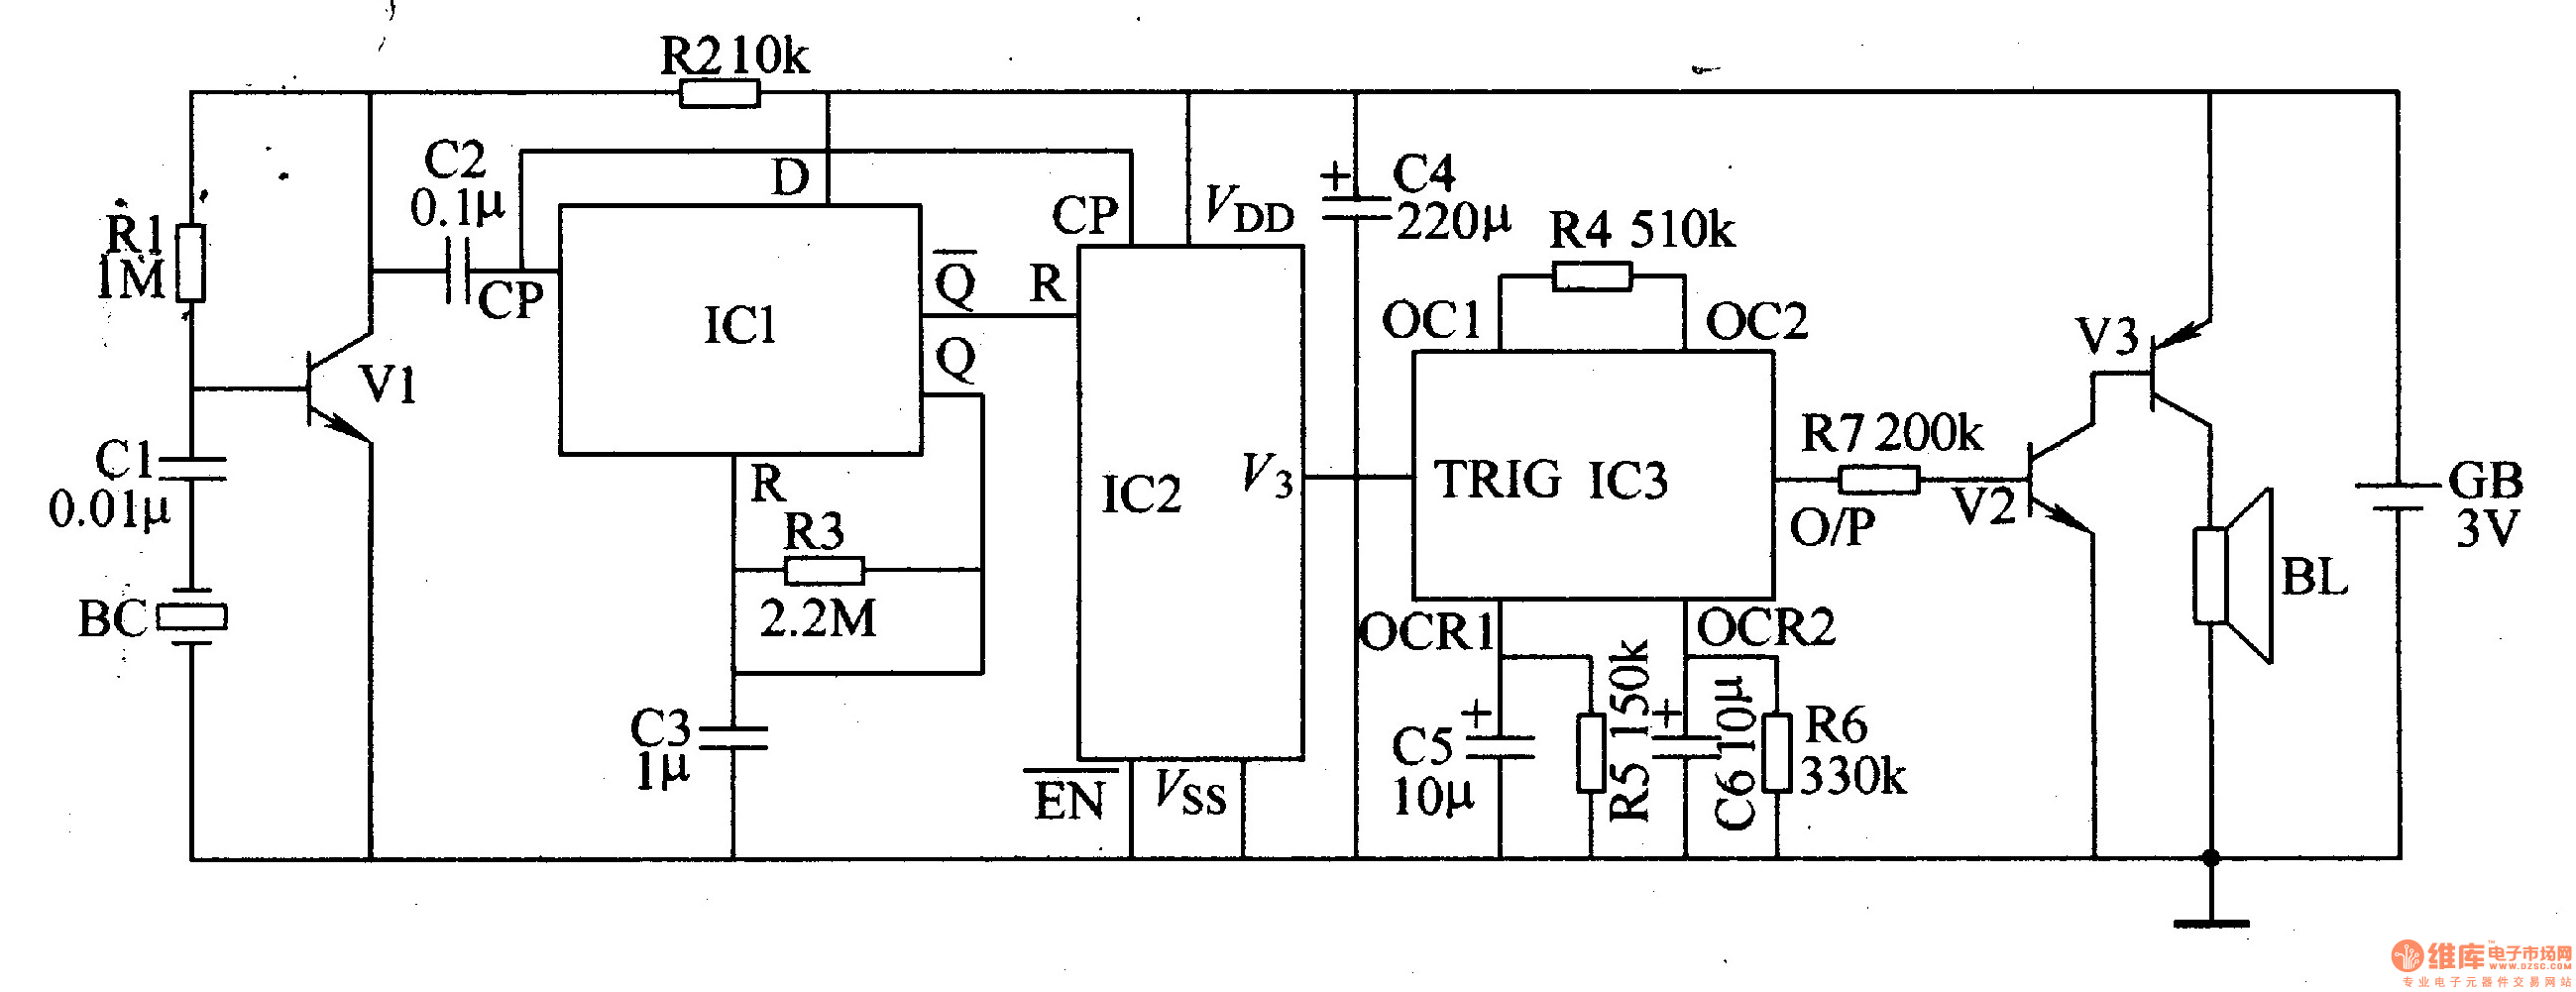 Percussion electronic doorbell 1 - schematic